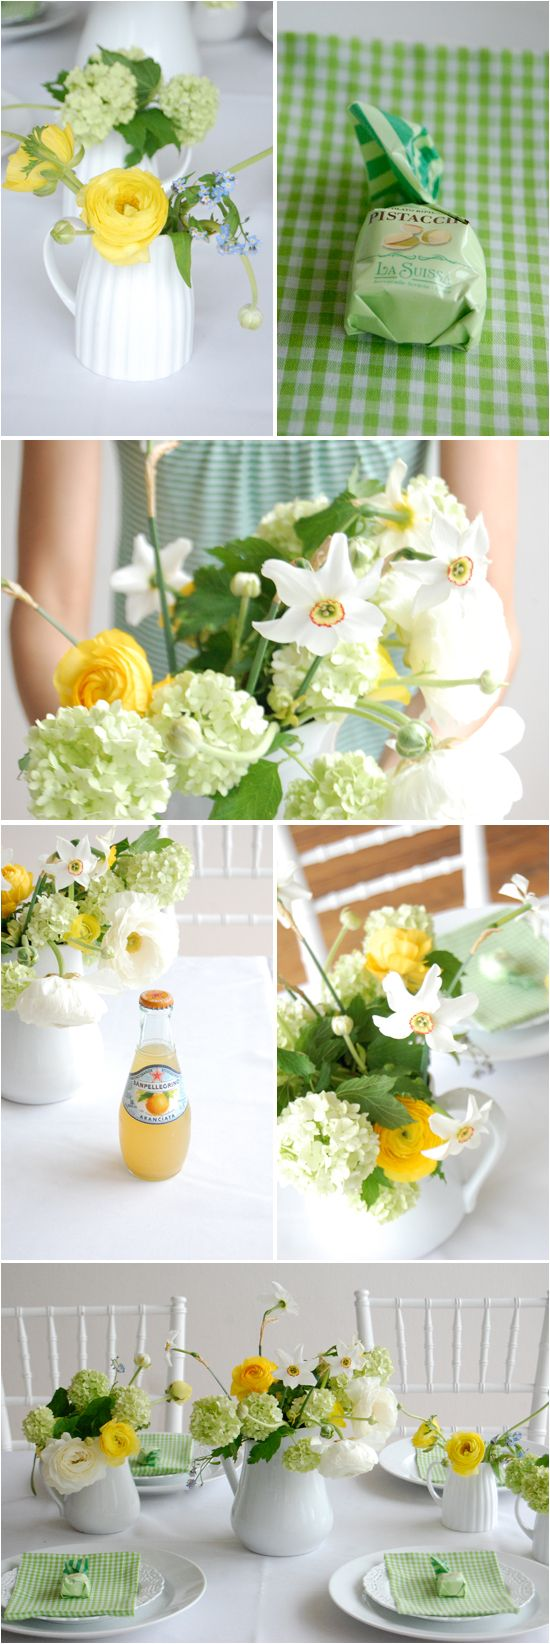 1000 Images About AMF Wedding Inspirations On Pinterest